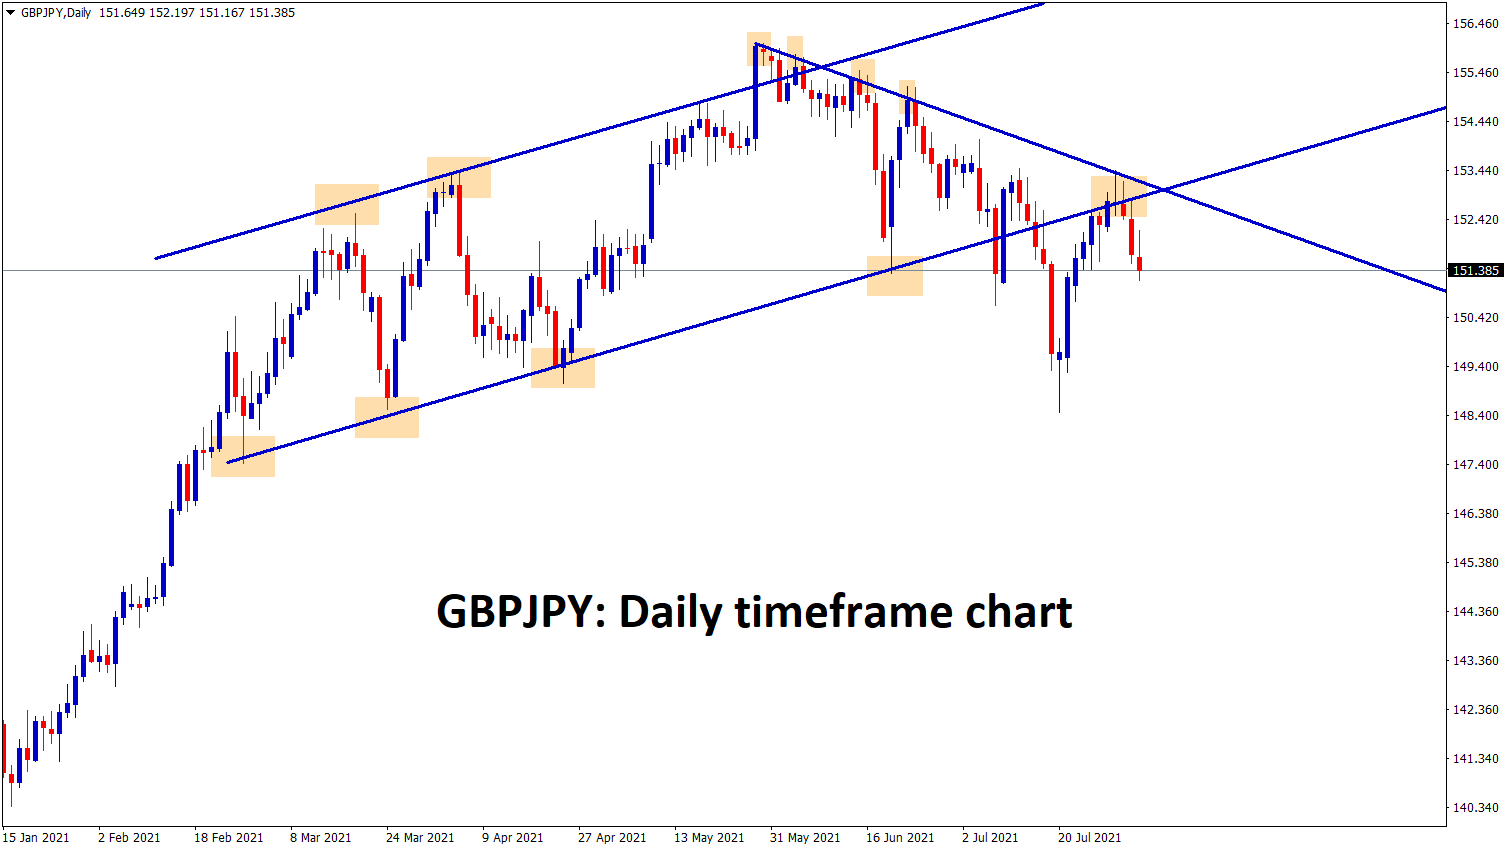 GBPJPY is falling after retesting the broken level and the lower high zone of the downtrend line